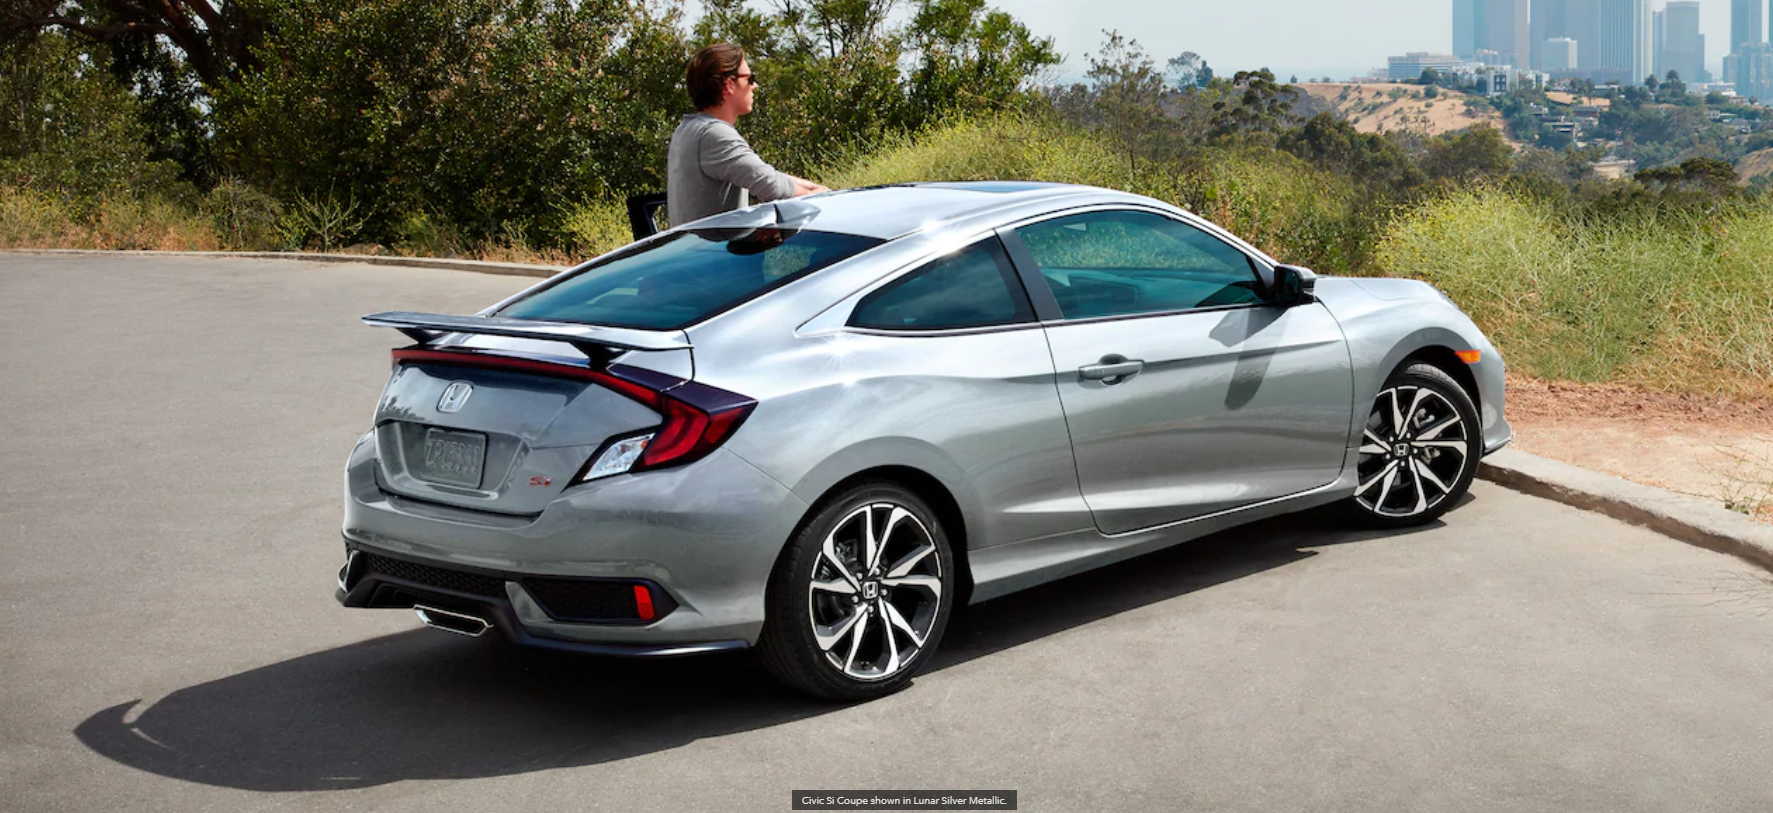 Castle Honda has a large inventory of Honda vehicles near Addison, IL